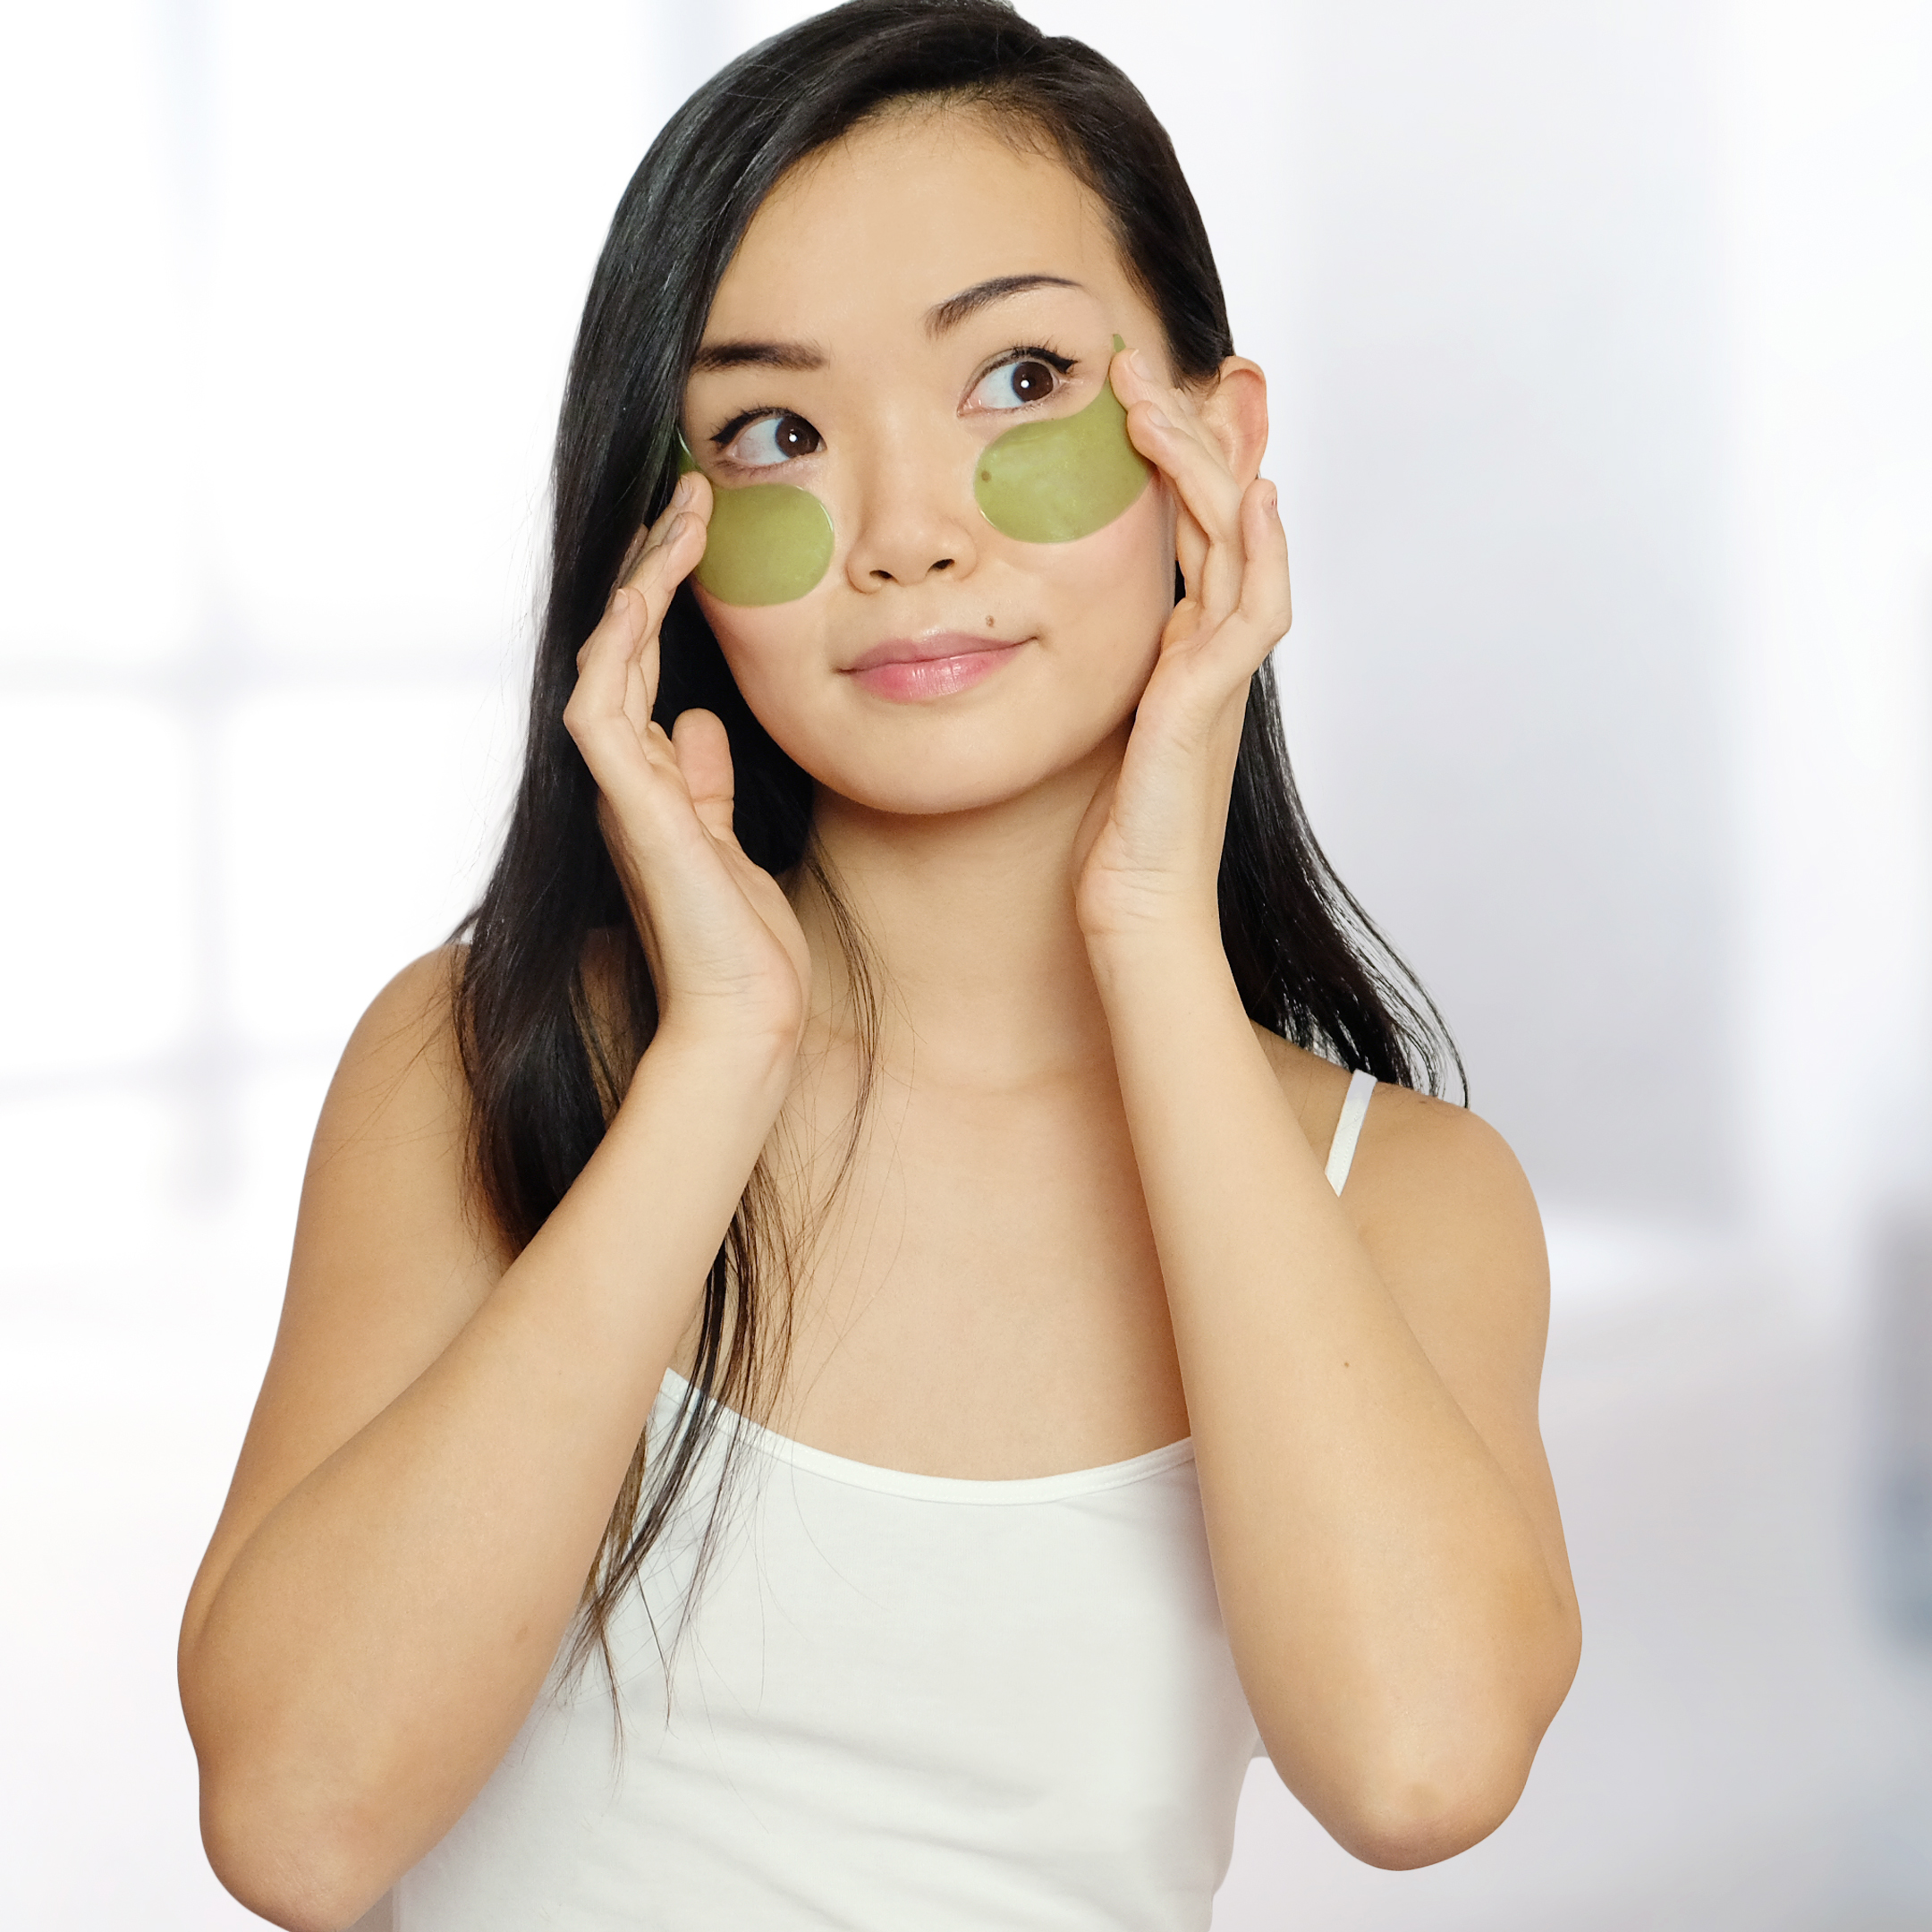 A model applies both green patches under their eyes